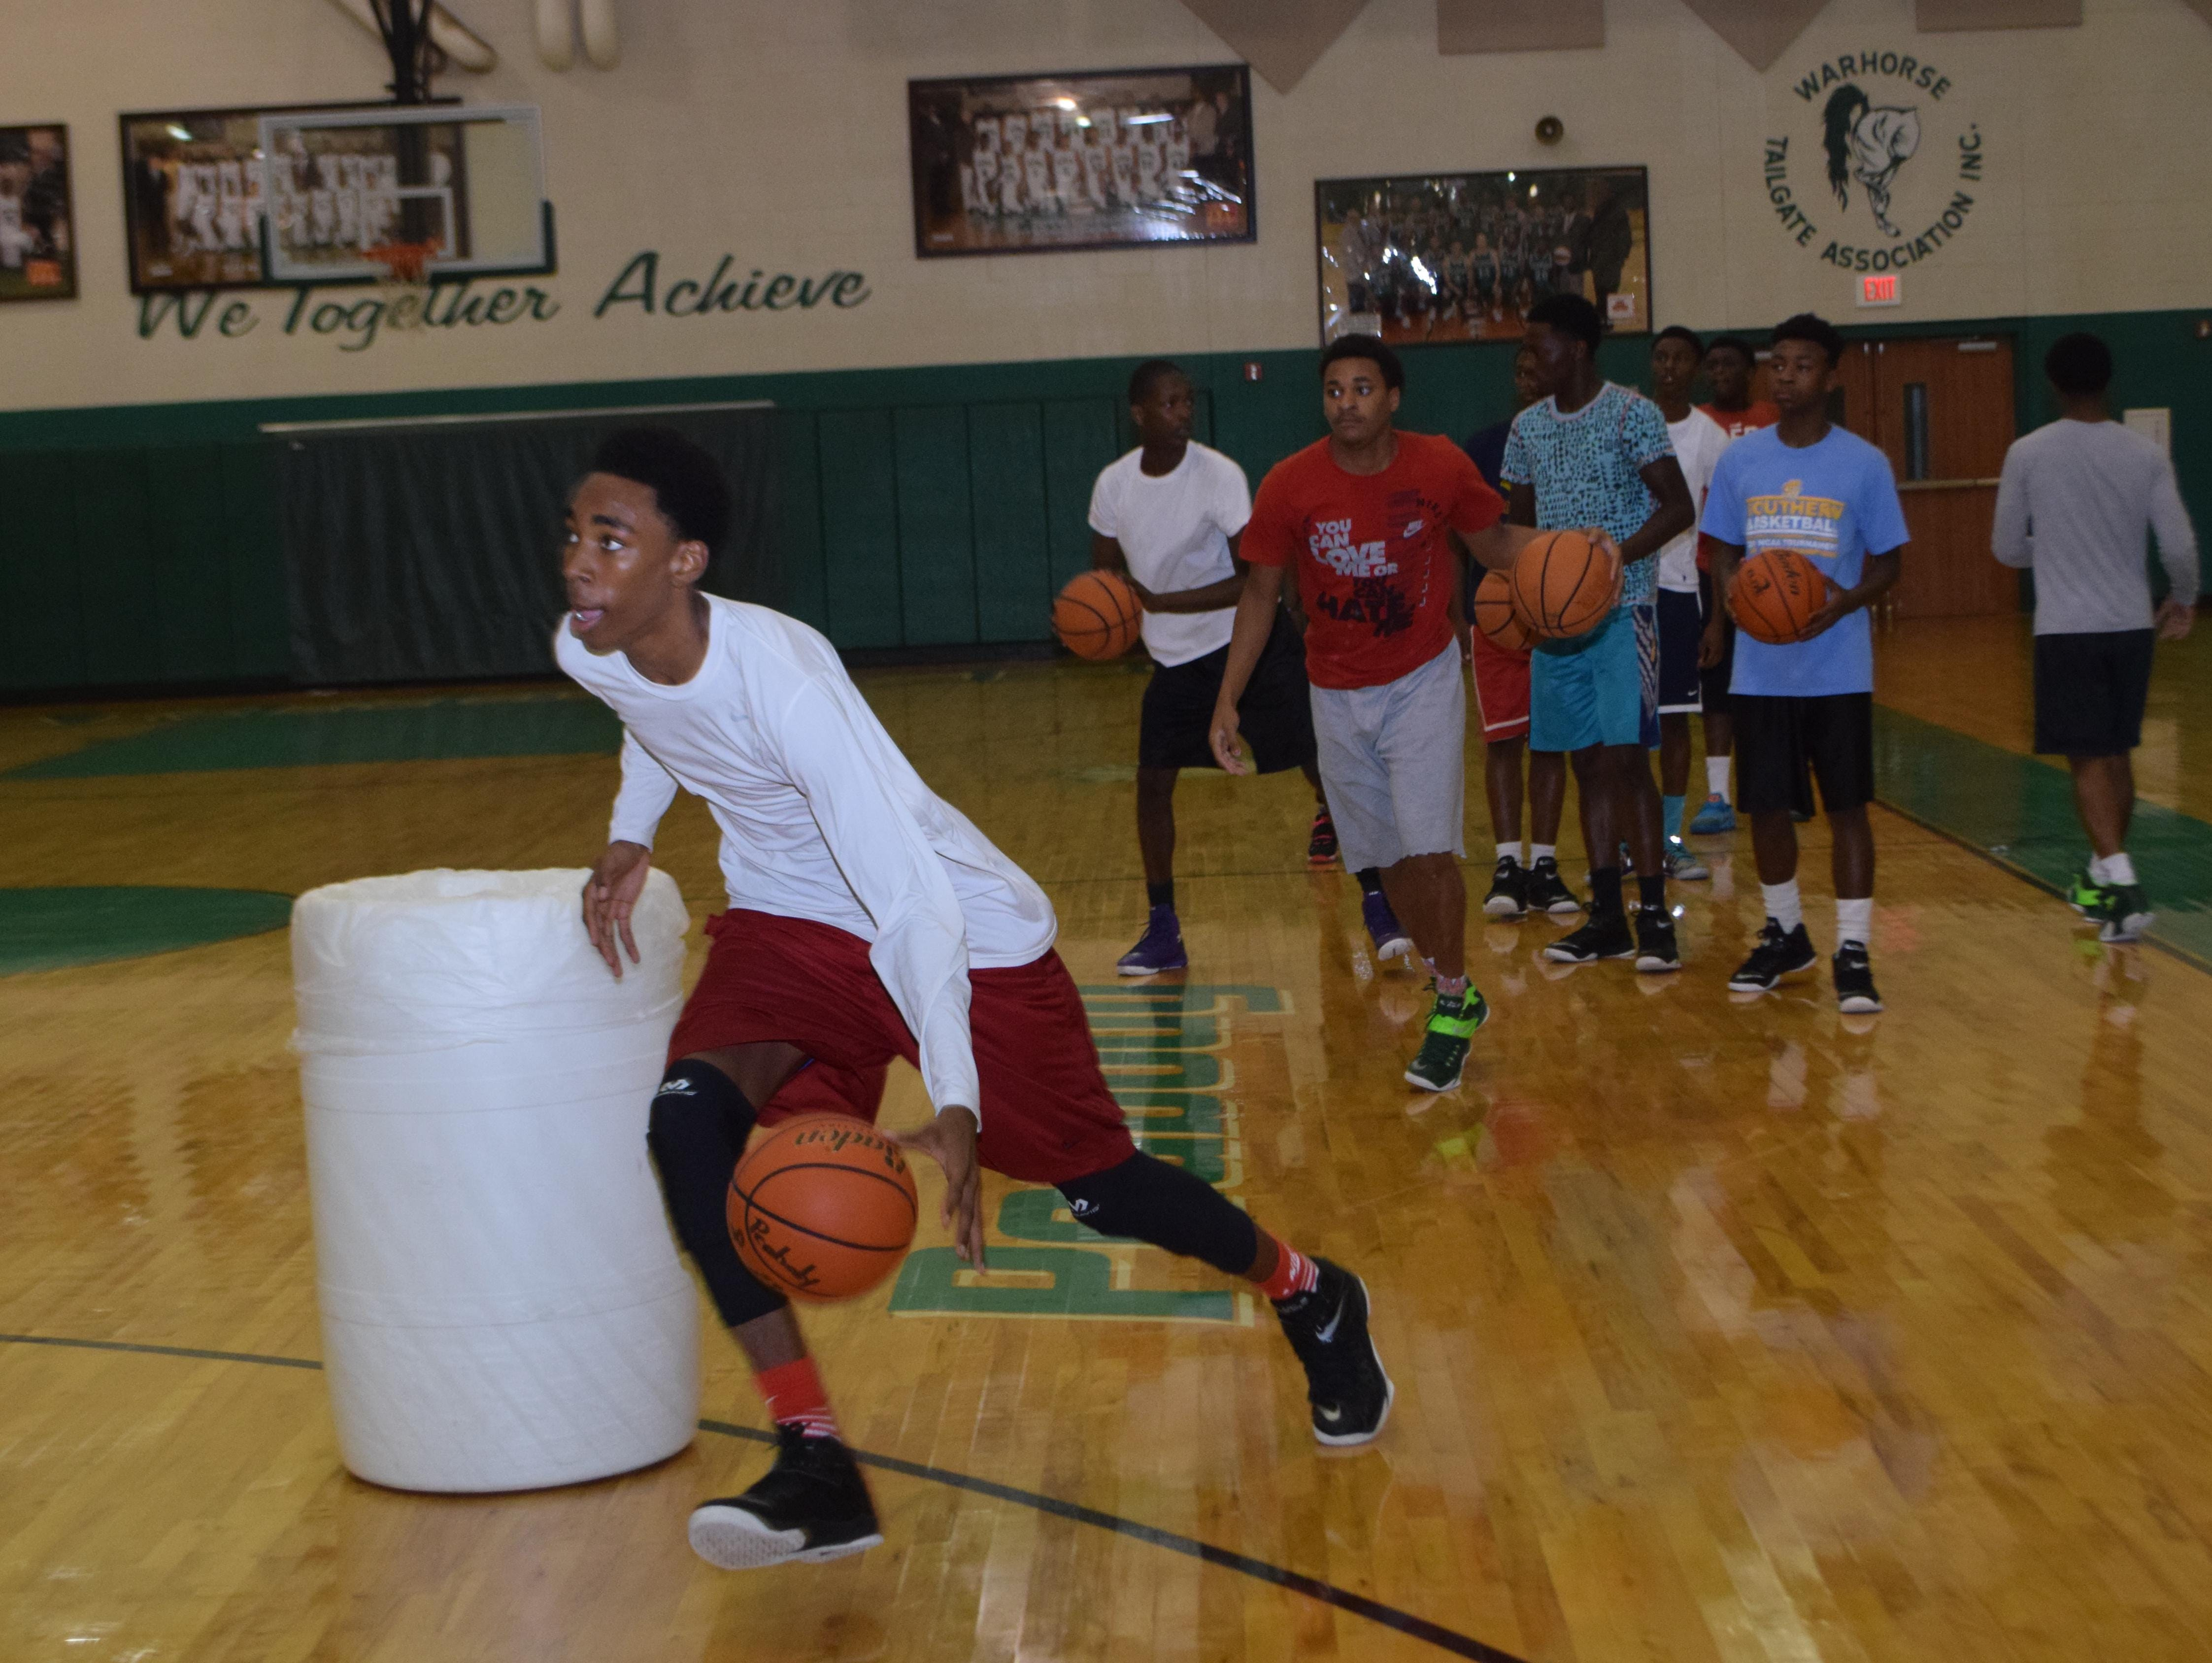 Peabody's Kamron Trowel practices with the rest of the Peabody team Wednesday. The Peabody Magnet High School basketball team recently won the Houston National Summer Showcase.